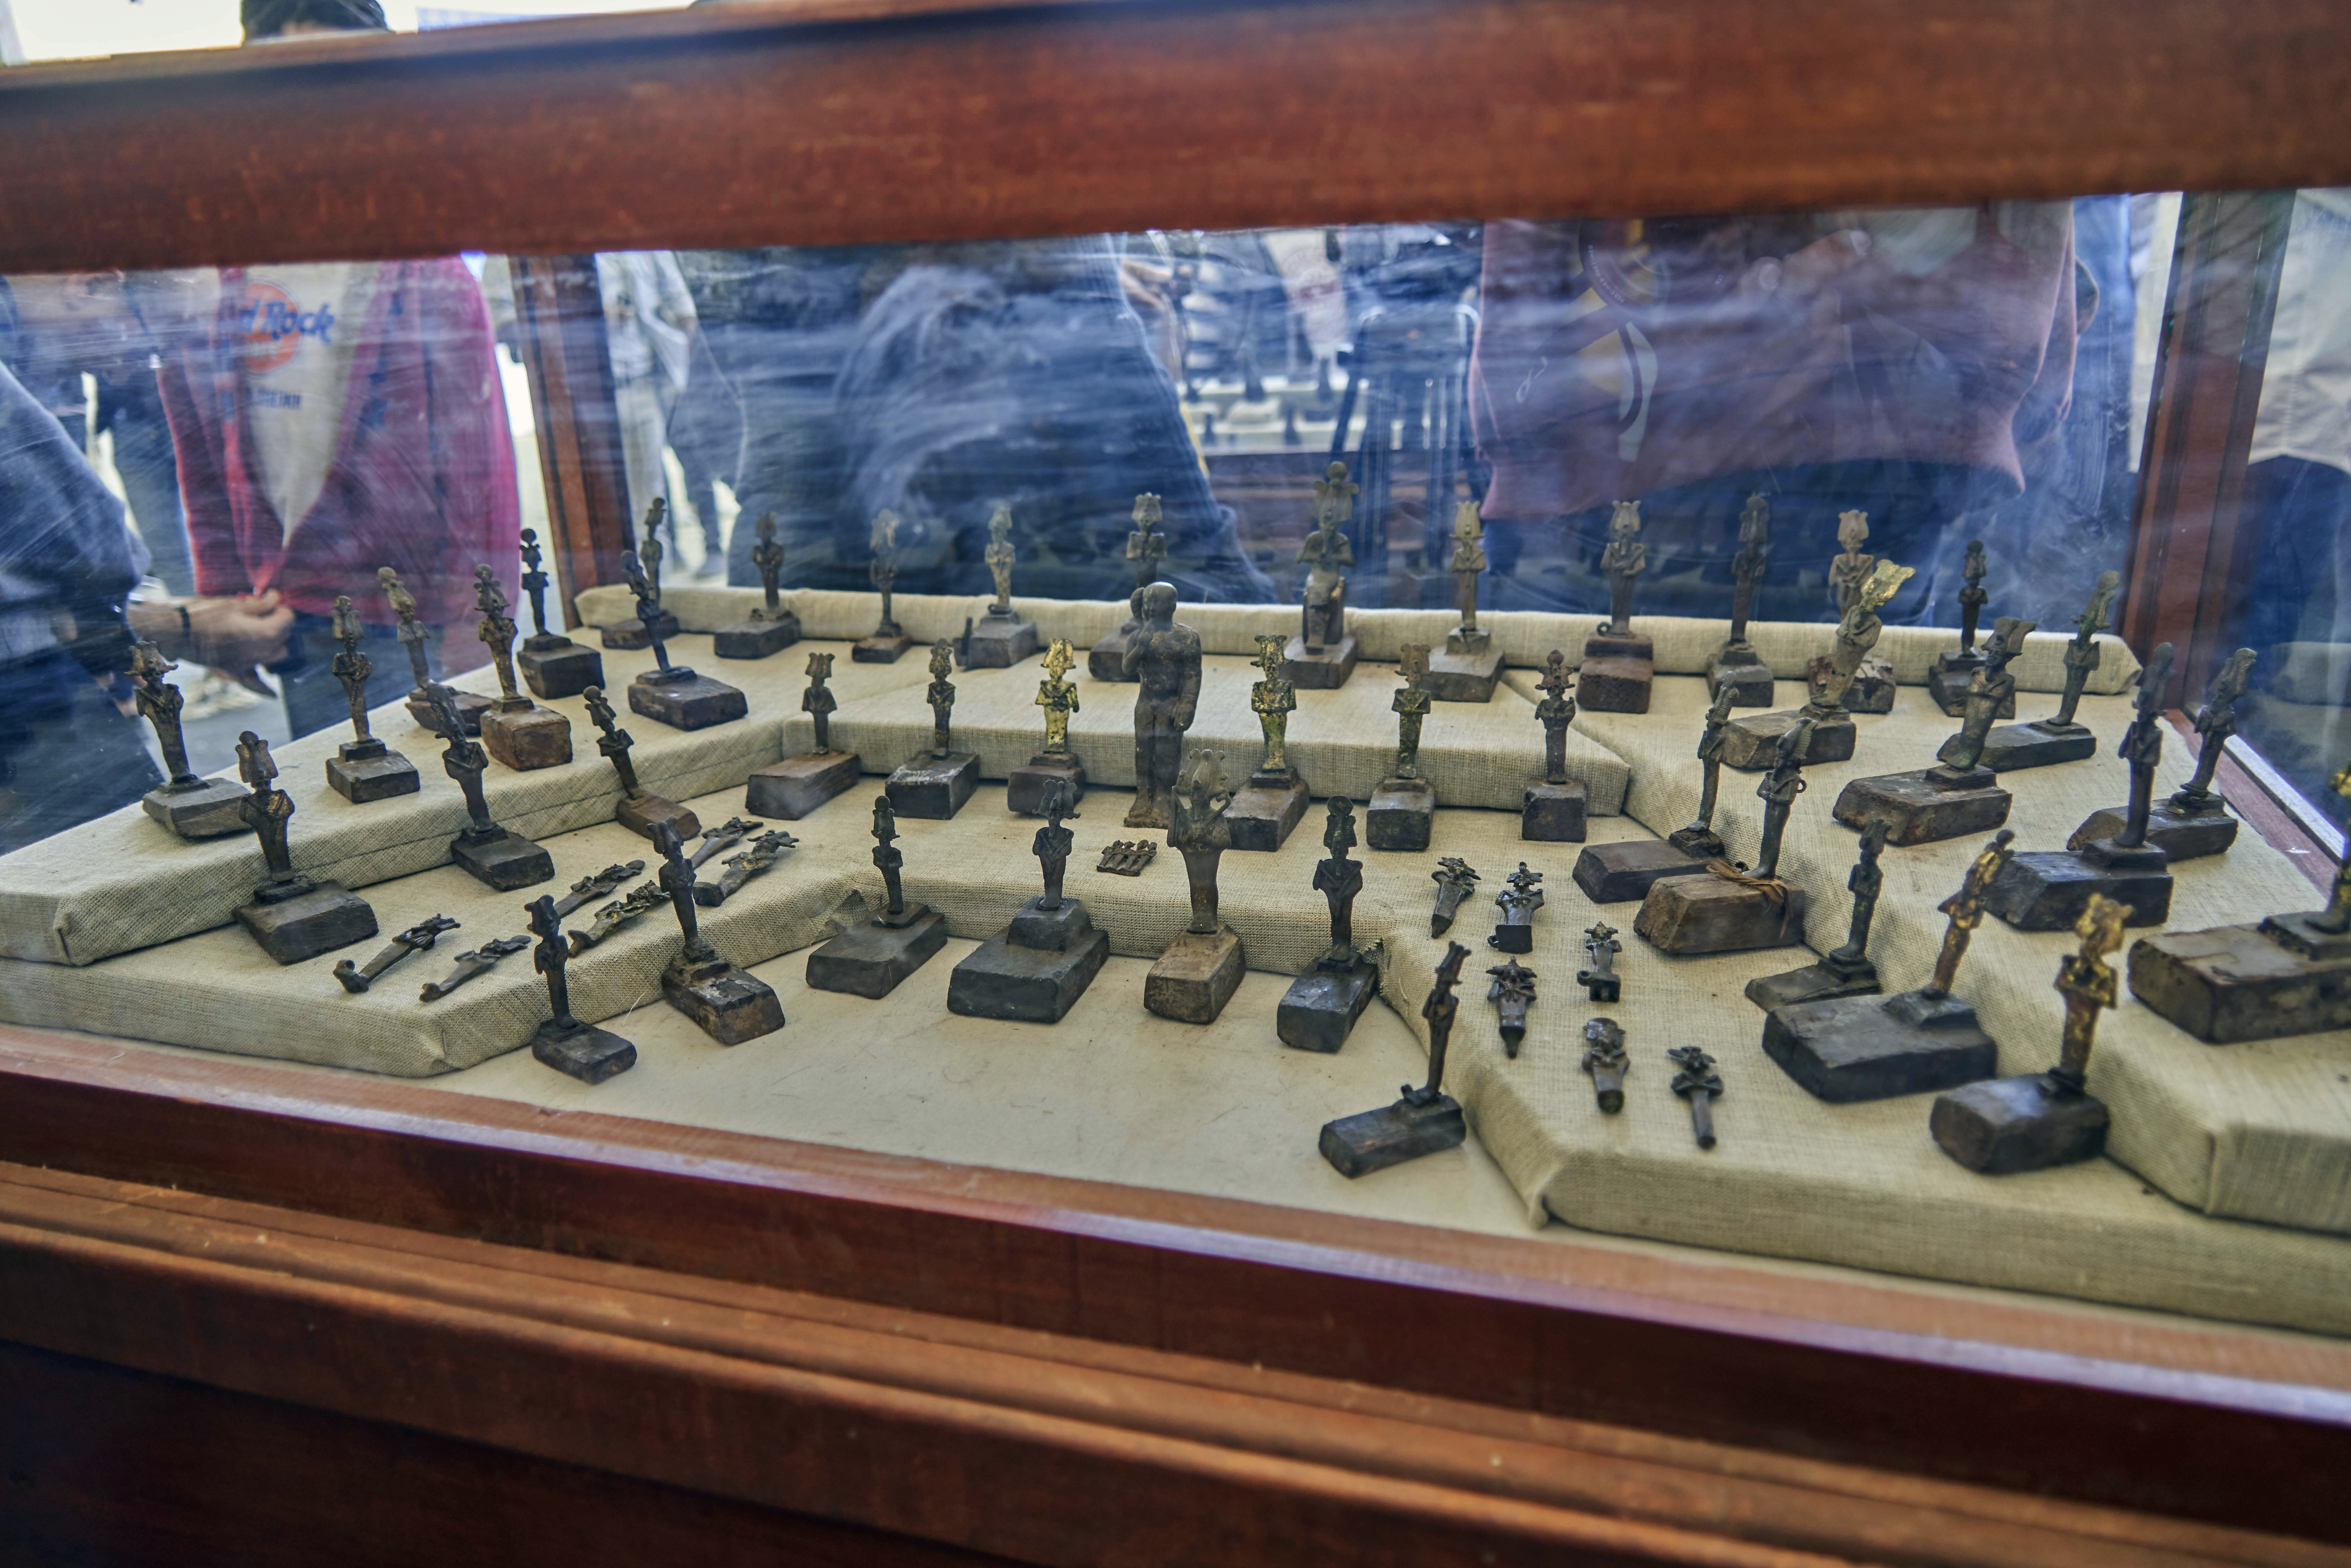 73 bronze statuettes depicting god Osiris are displayed in Saqqara, south Giza, Egypt. Saturday, Nov. 23, 2019. Egypt's Ministry of Antiquities revealed details on recently discovered animal mummies, saying they include two lion cubs as well as several crocodiles, birds and cats. The new discovery was displayed at a makeshift exhibition at the famed Step Pyramid of Djoser in Saqqara, south of Cairo, near the mummies and other artifacts were found in a vast necropolis. (AP Photo/Hamada Elrasam)